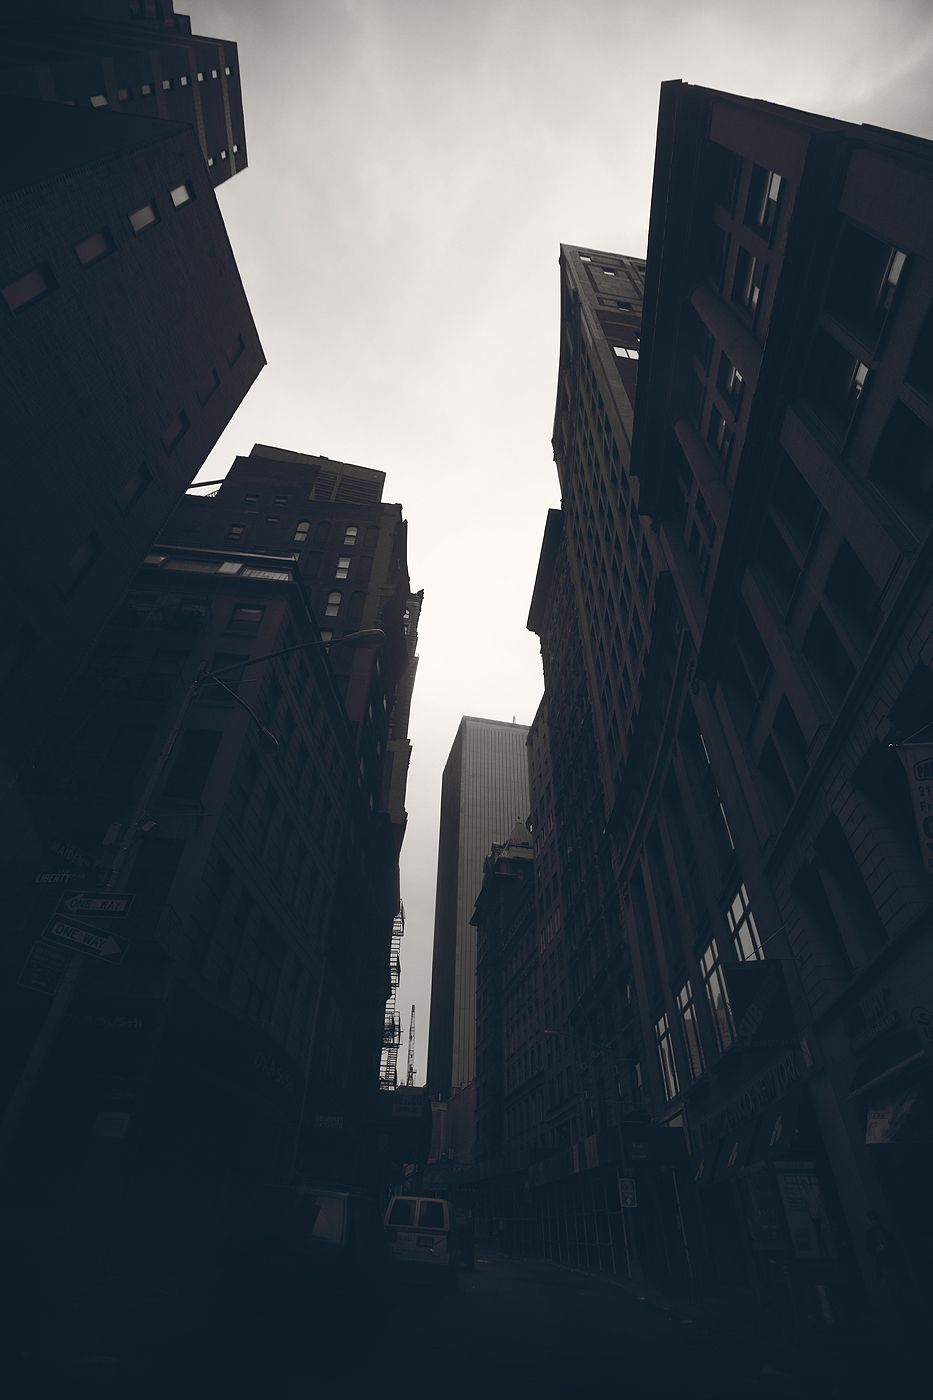 Hurricane Sandy turns the Financial District into a series of dark canyons.   Chris New, 2012.